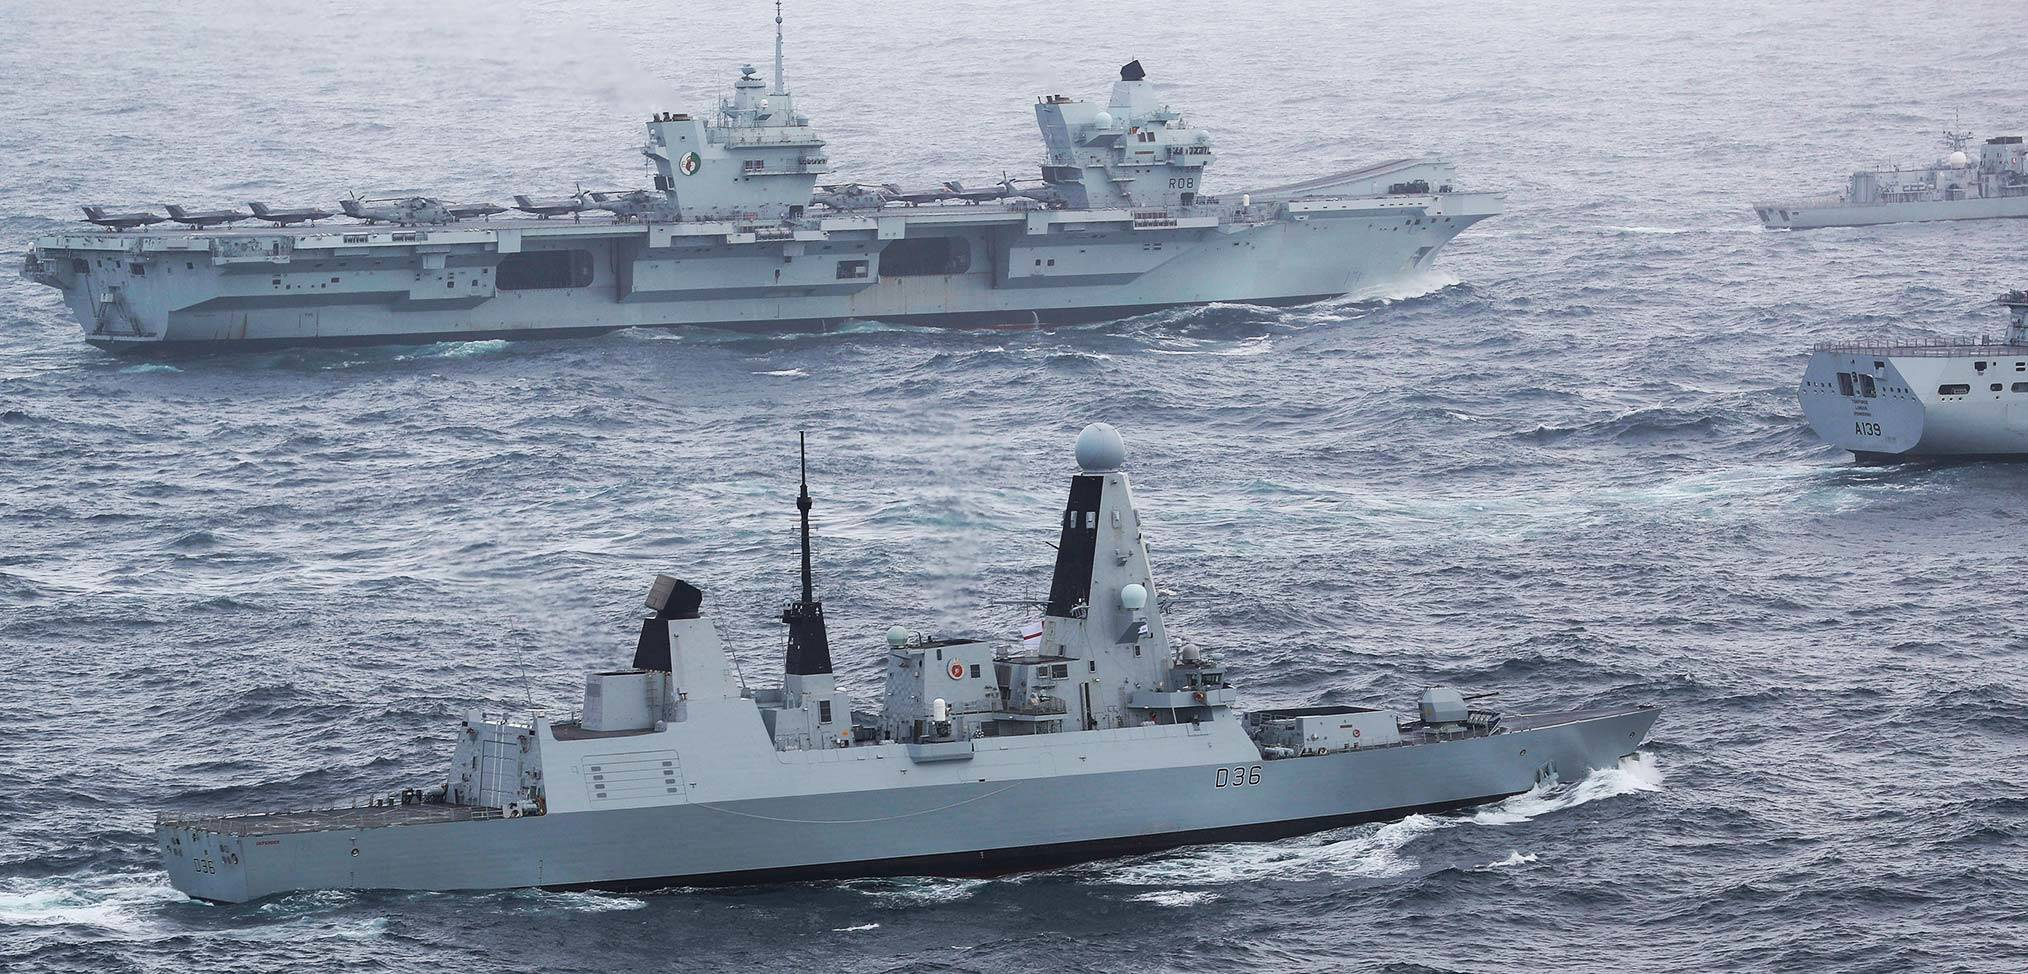 A year in review – the Royal Navy in 2020